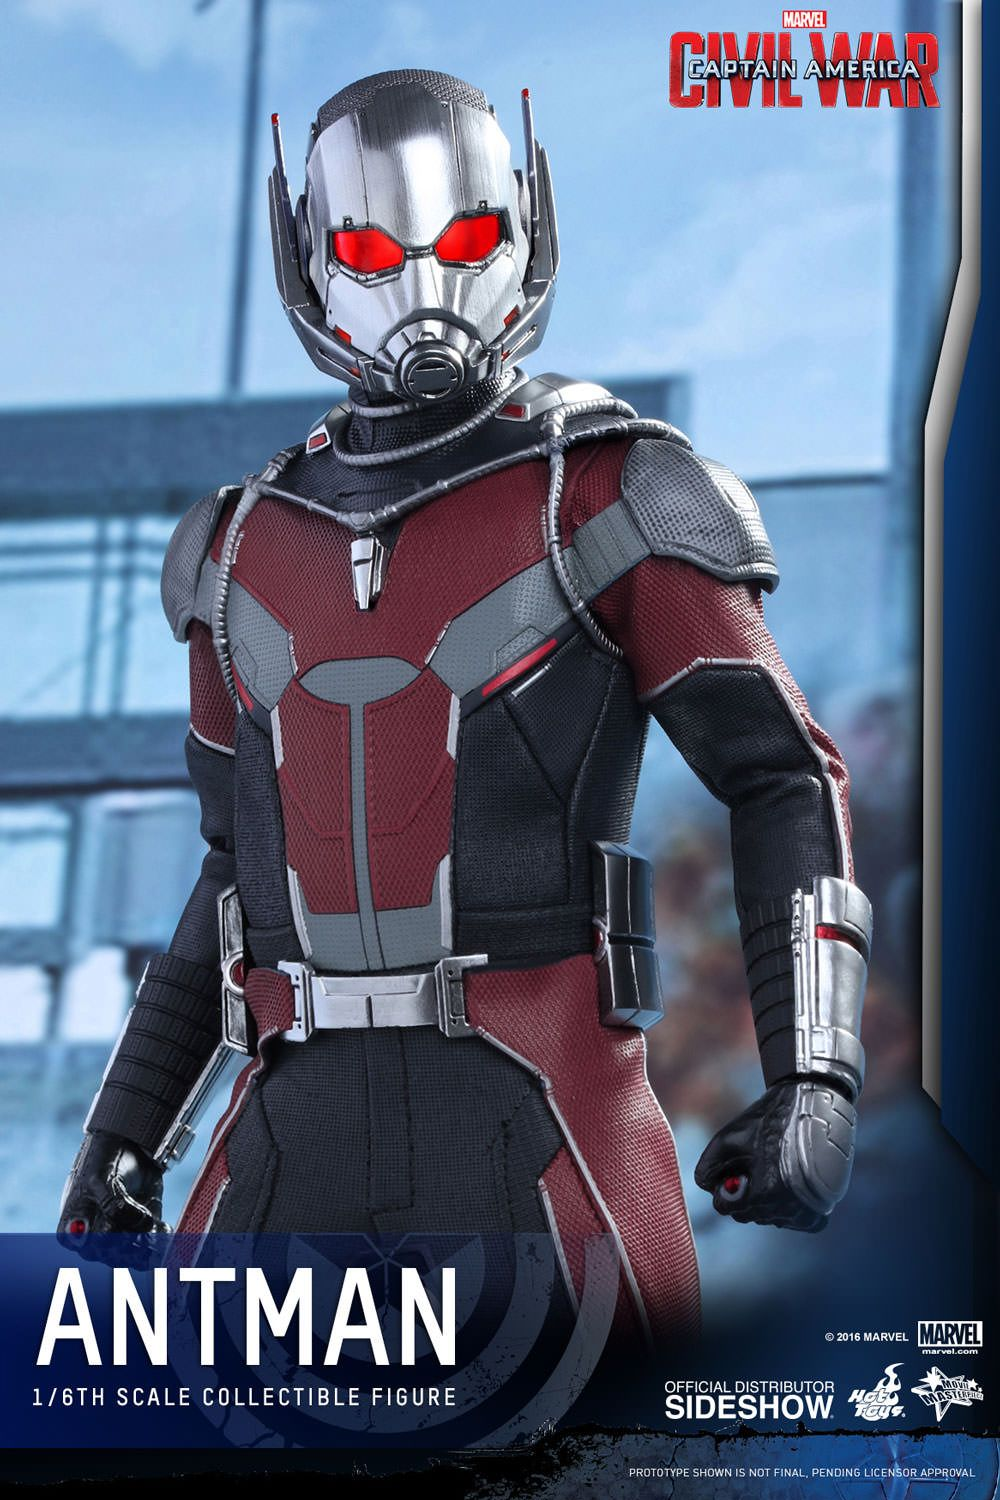 The Hot Toys Ant Man Sixth Scale Figure Is Available At